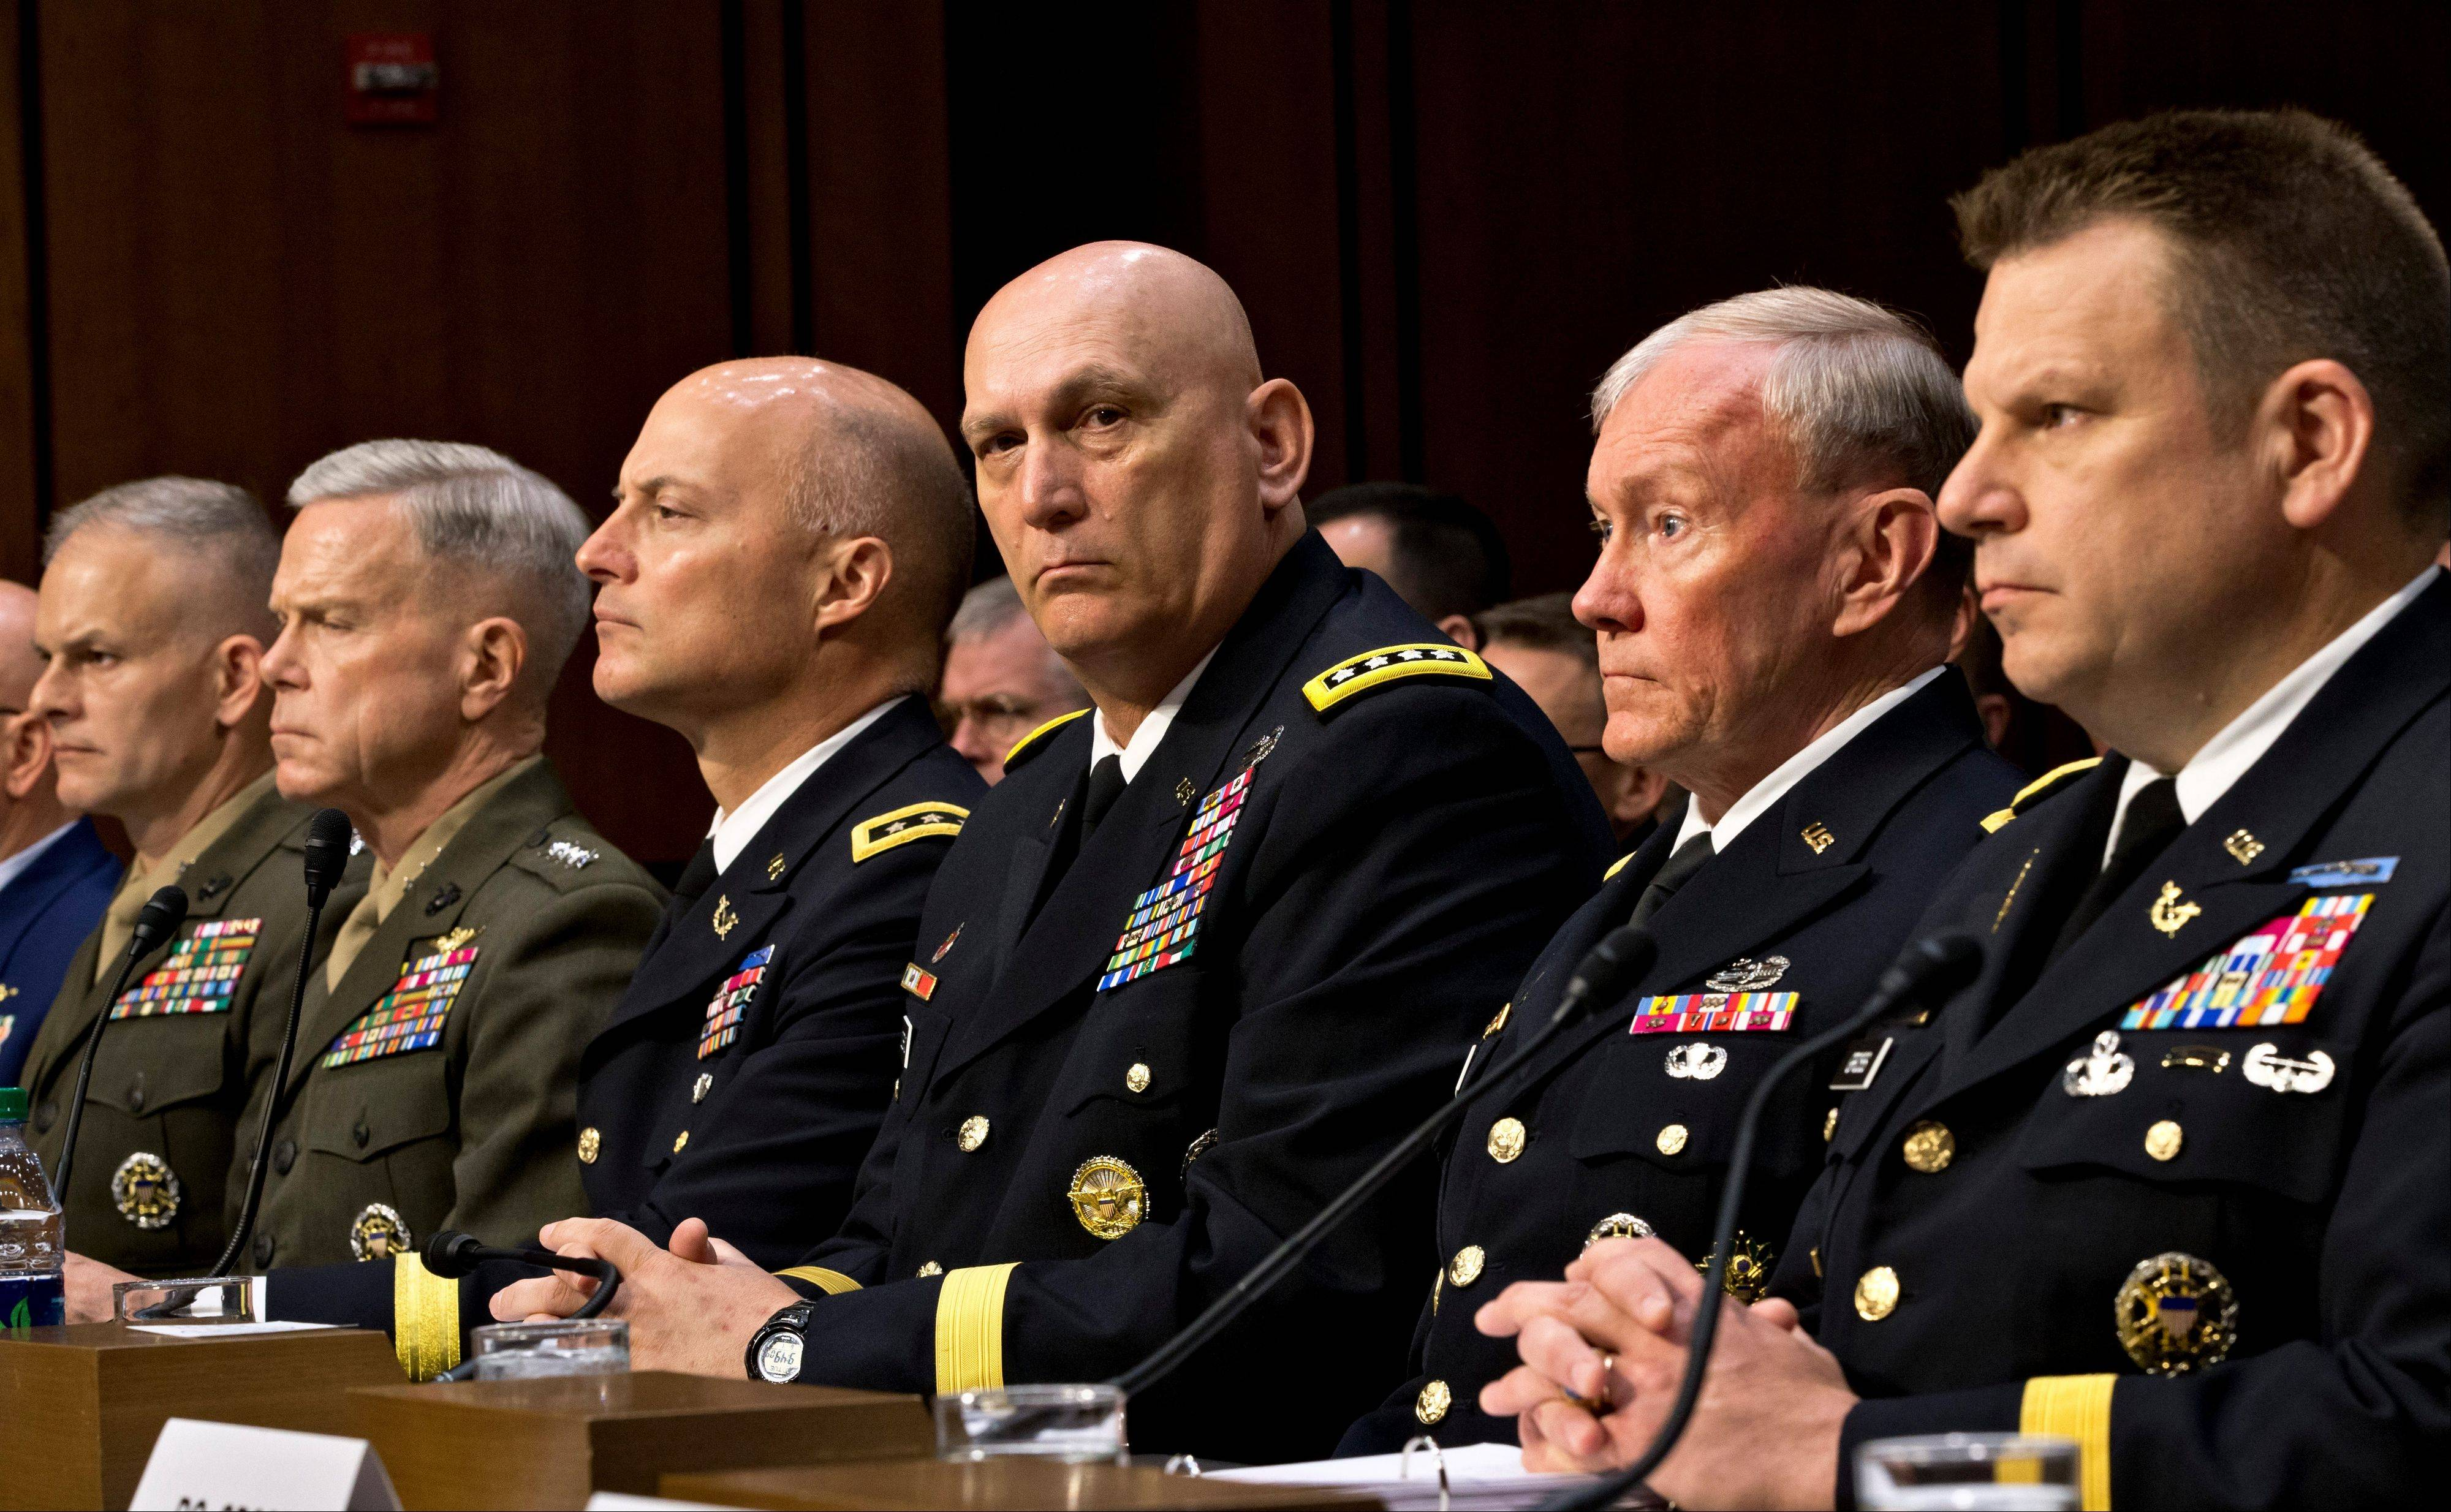 ASSOCIATED PRESSAs Congress investigates the growing epidemic of sexual assaults within the military, the Senate Armed Services Committee held a hearing on Capitol Hill Tuesday to demand answers from top uniformed leaders. From right to left are: Legal Counsel to the Chairman of the Joint Chiefs of Staff Brig. Gen. Richard C. Gross, Joint Chiefs Chairman Gen. Martin Dempsey, Army Chief of Staff Gen. Ray Odierno, Judge Advocate General of the Army Lt. Gen. Dana K. Chipman, Commandant of the Marine Corps Gen. James F. Amos, and Staff Judge Advocate to the Marine Corps Commandant Maj. Gen. Vaughn A. Ary.